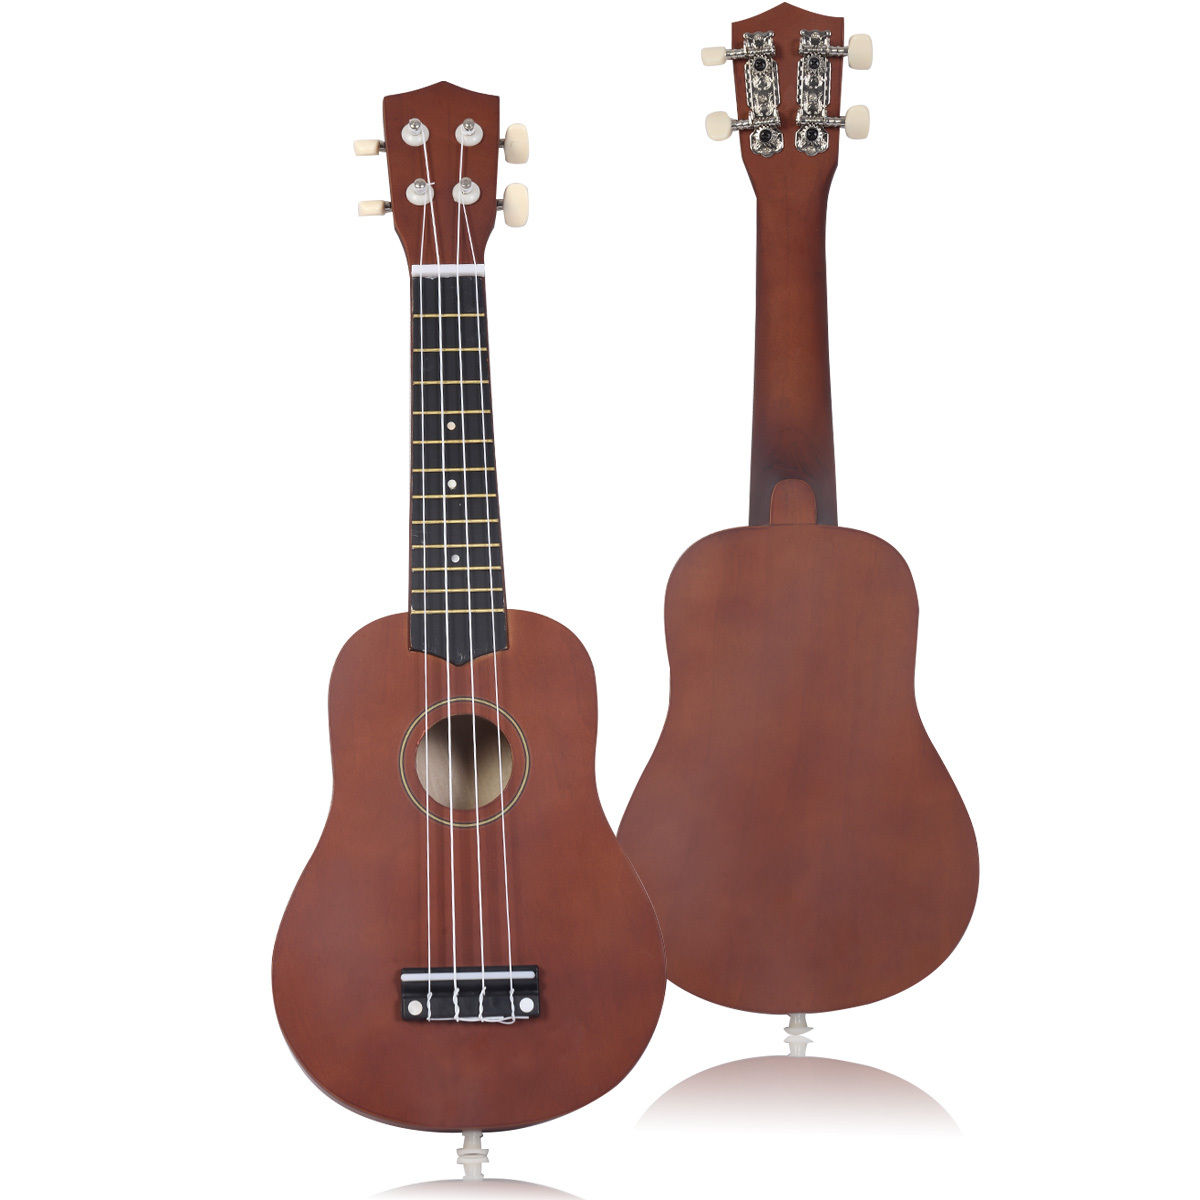 Costway 21'' Acoustic Ukulele Musical Instrument Coffee High Quality Professional by Costway